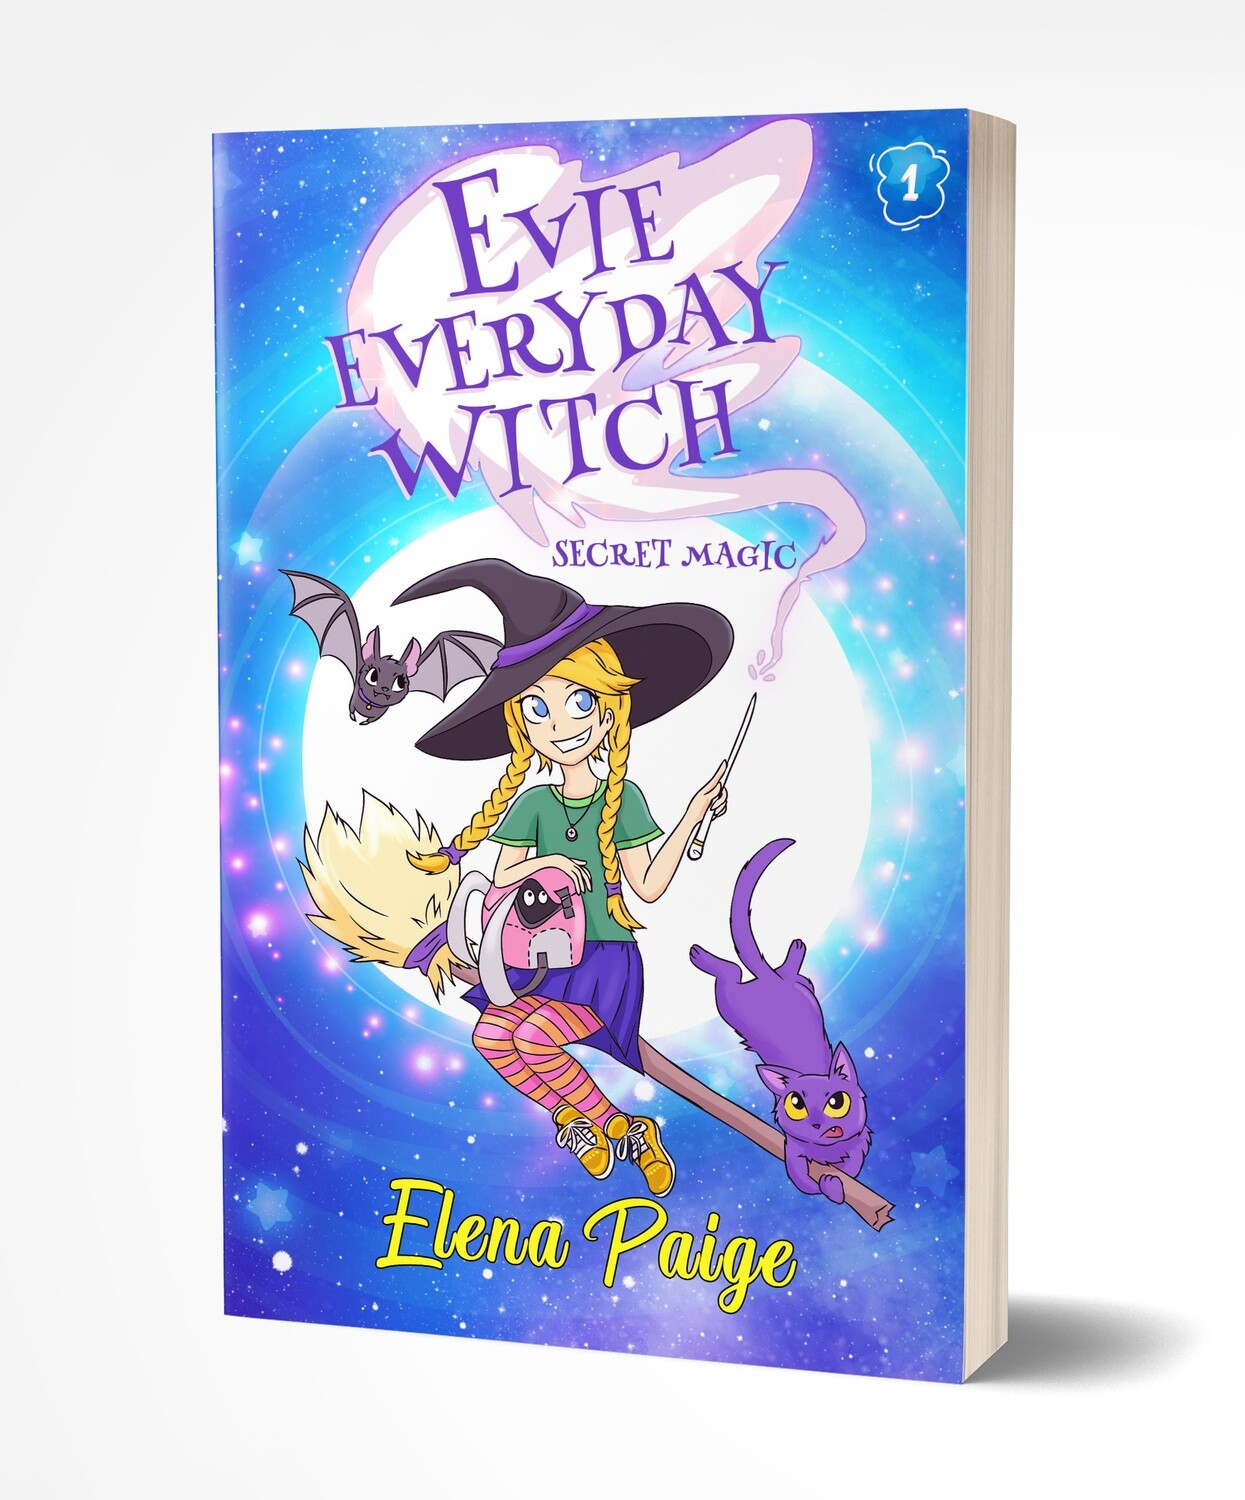 Special Magic (Evie Everyday Witch Book 1) - Paperback Edition 8x5